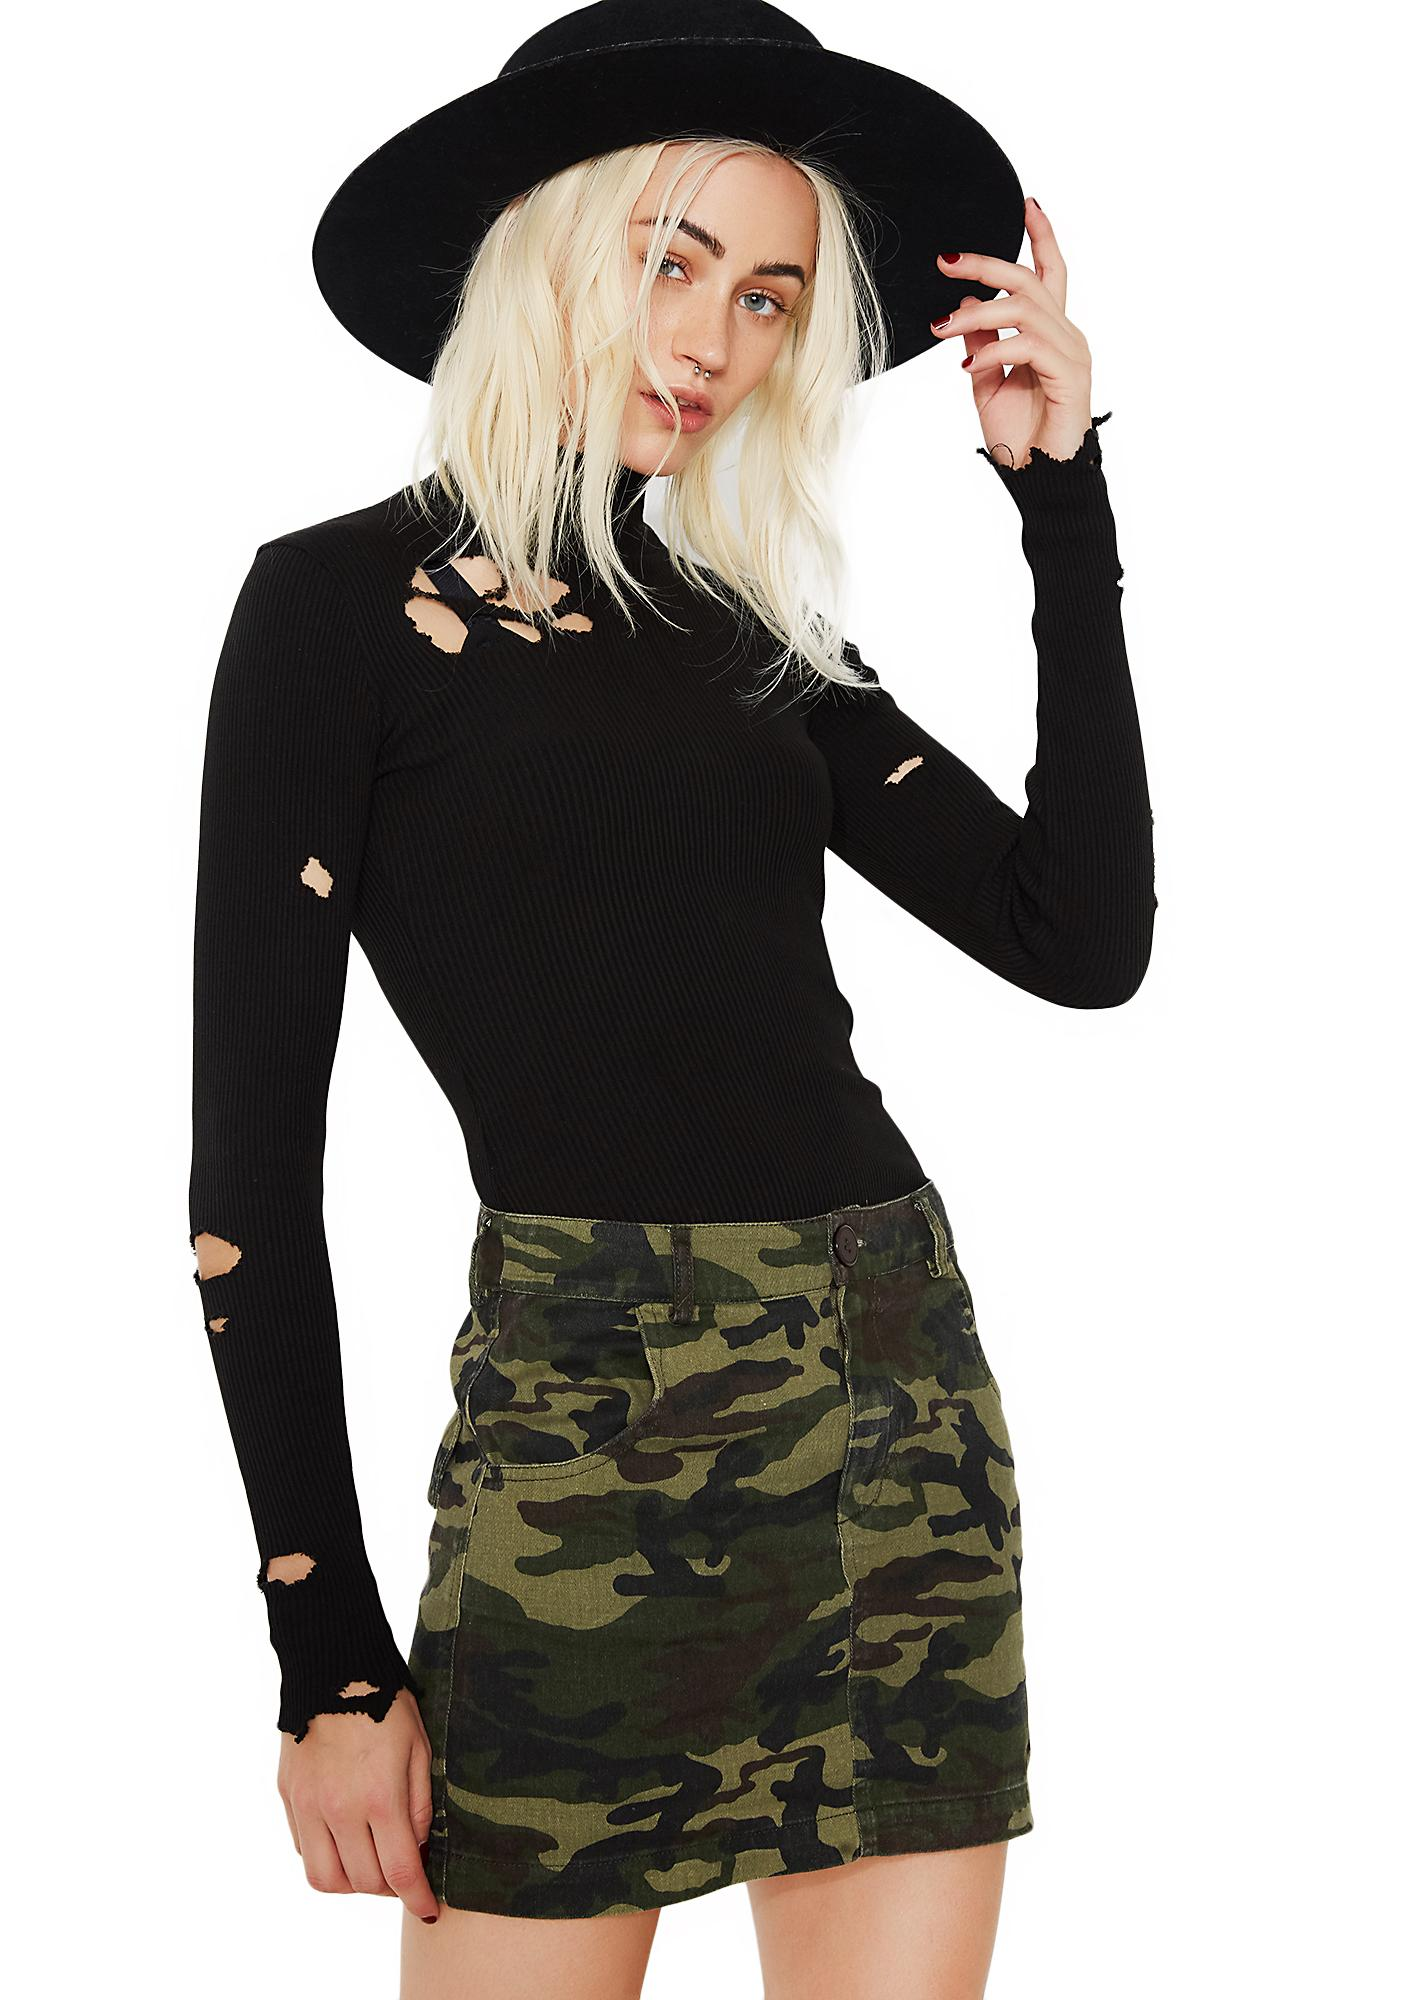 Out Of Sight Camo Skirt